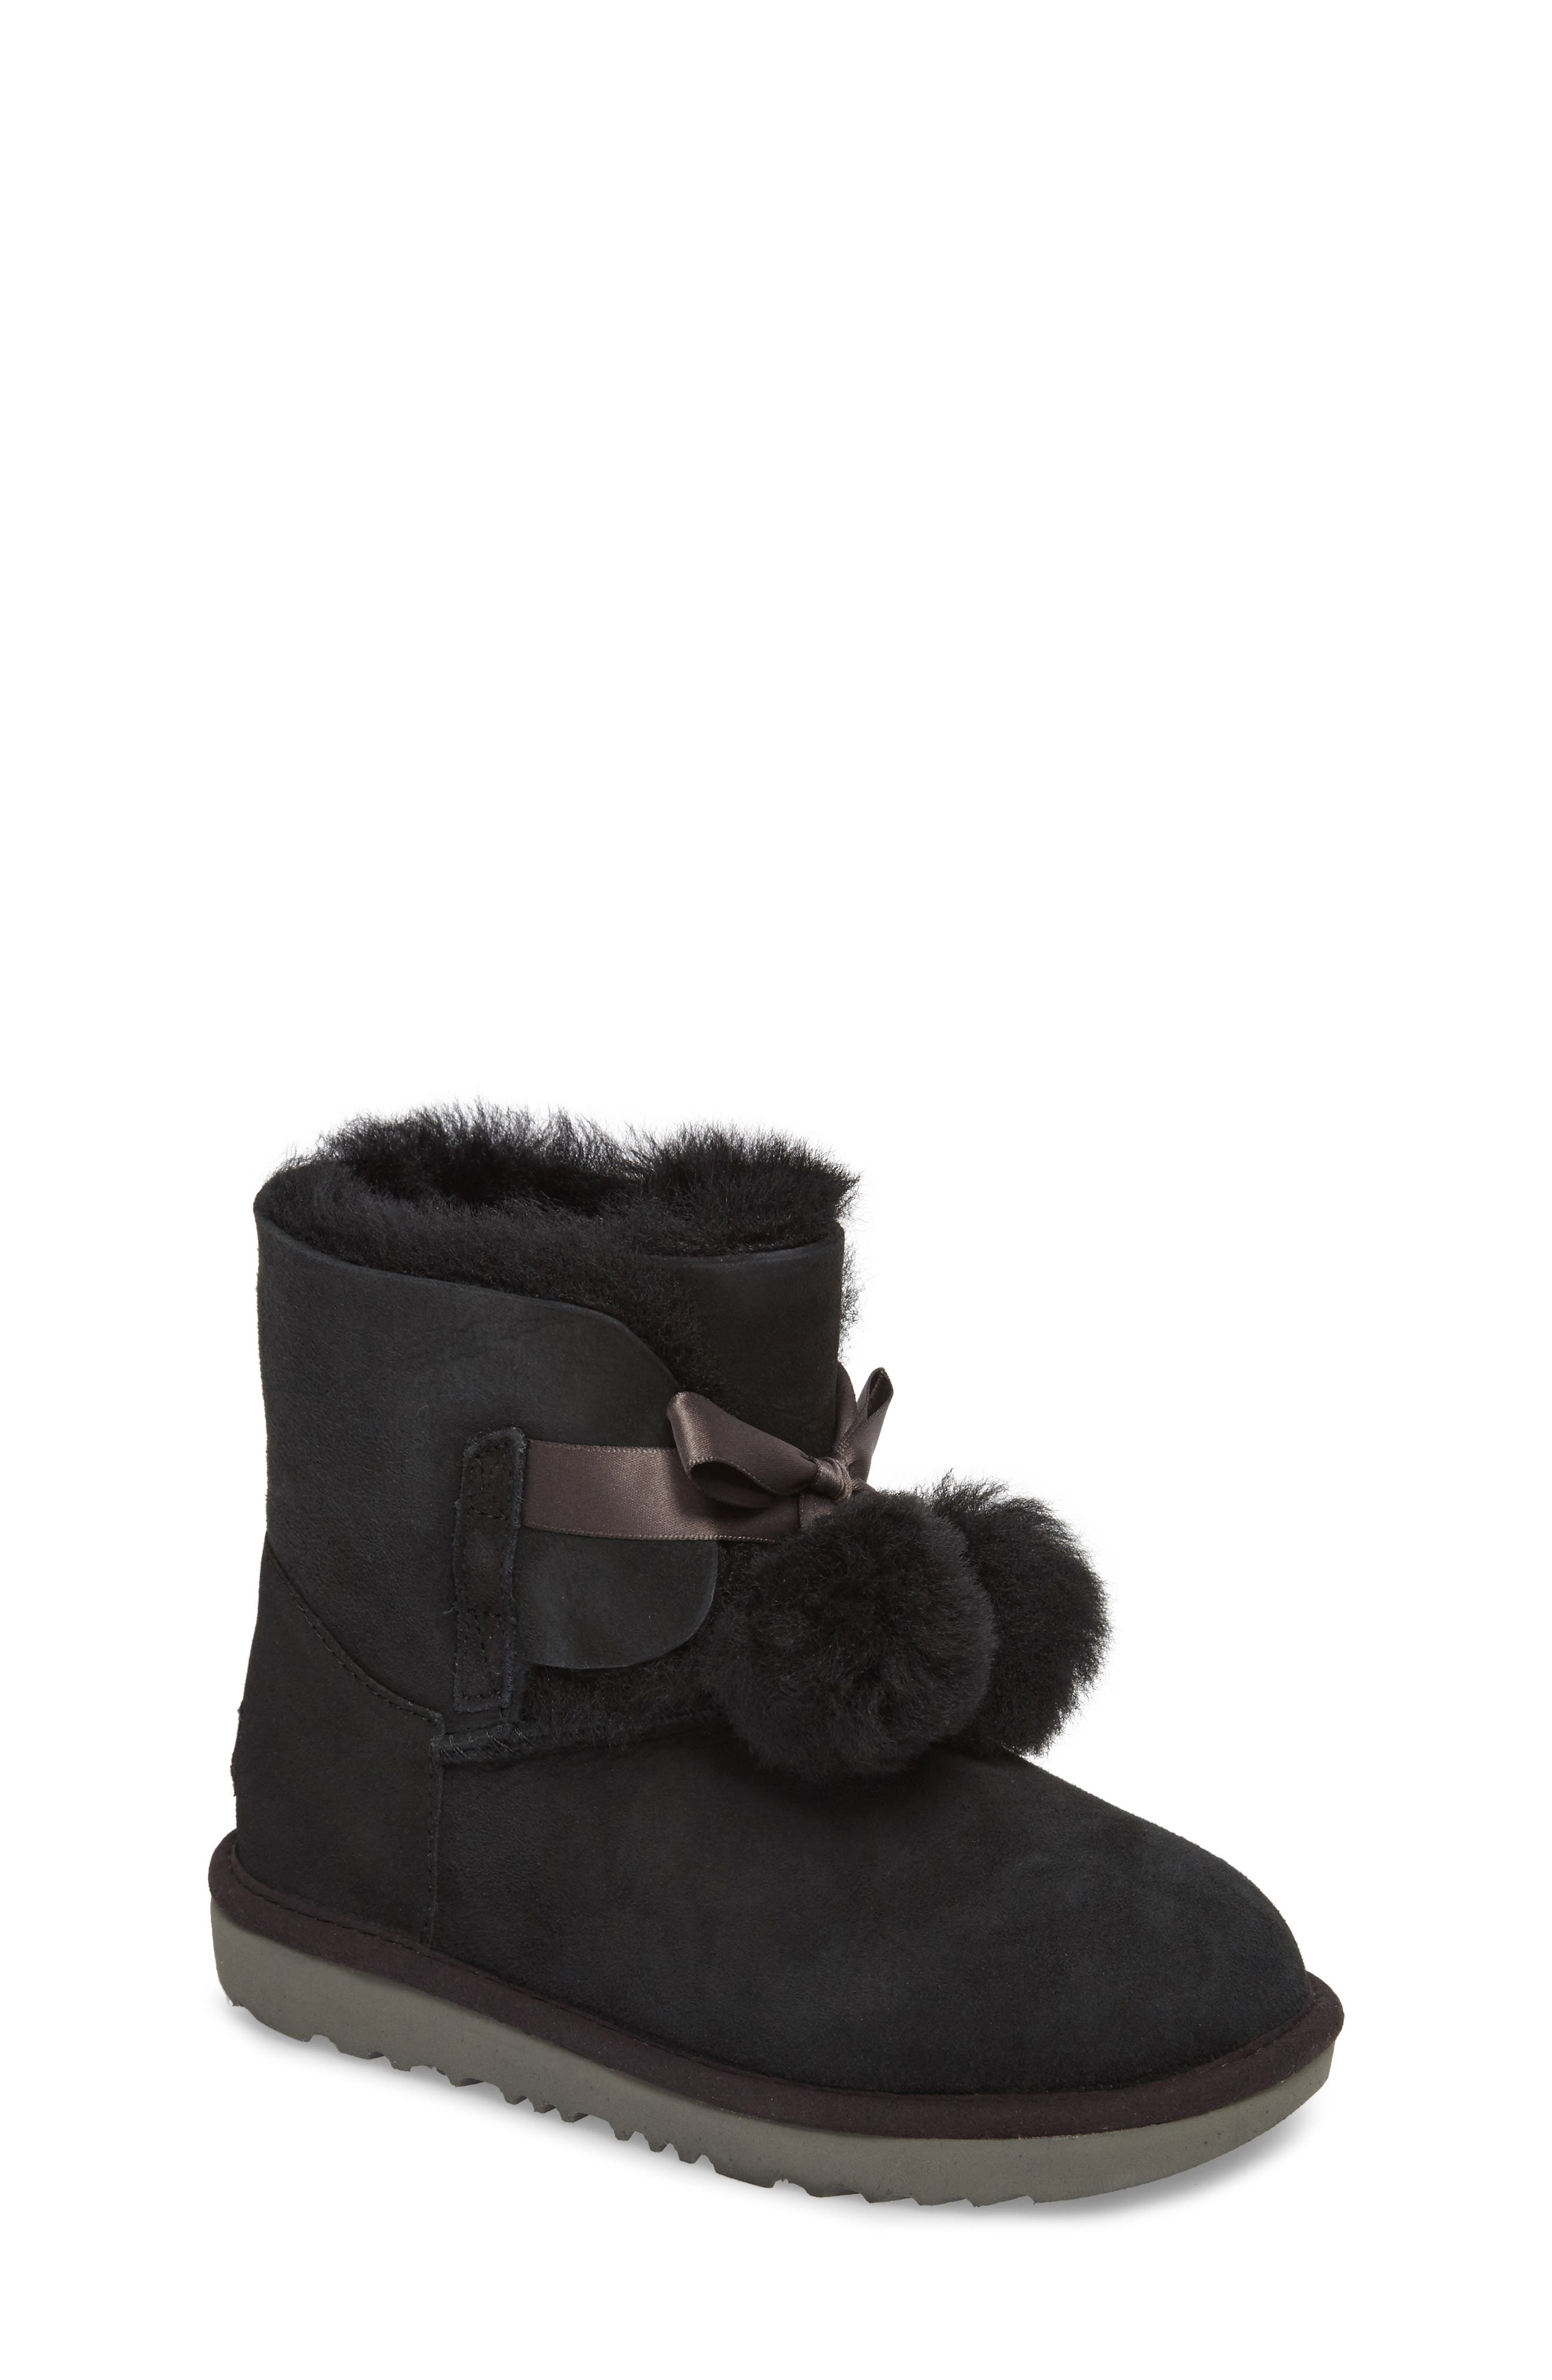 Gita Water-Resistant Genuine Shearling Pom Bootie,                             Main thumbnail 1, color,                             Black